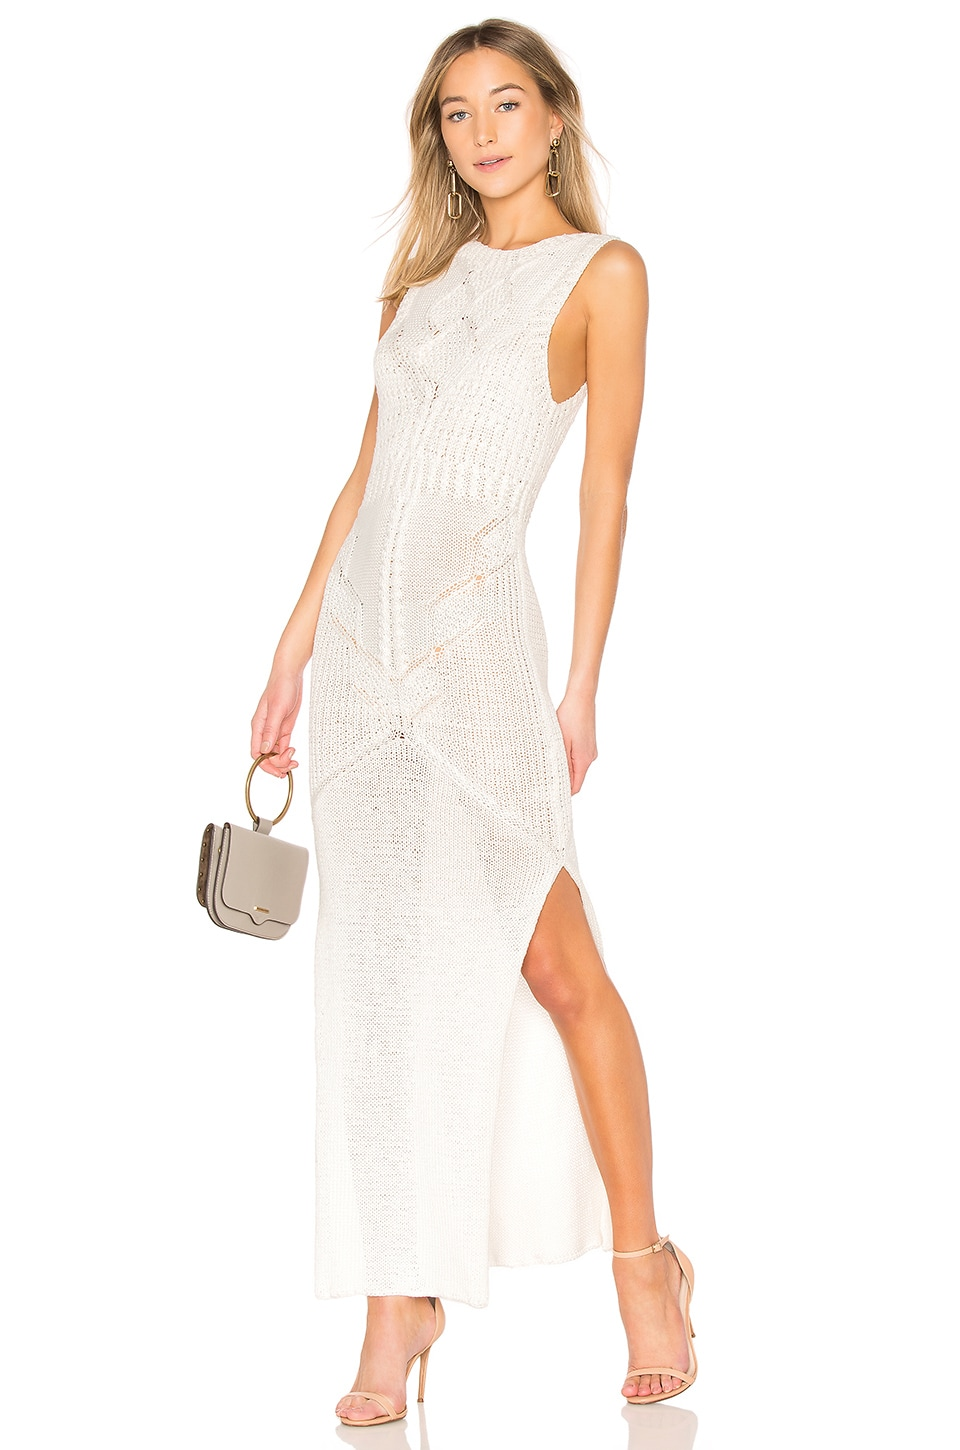 AYNI Paitina Cable Dress in Ivory